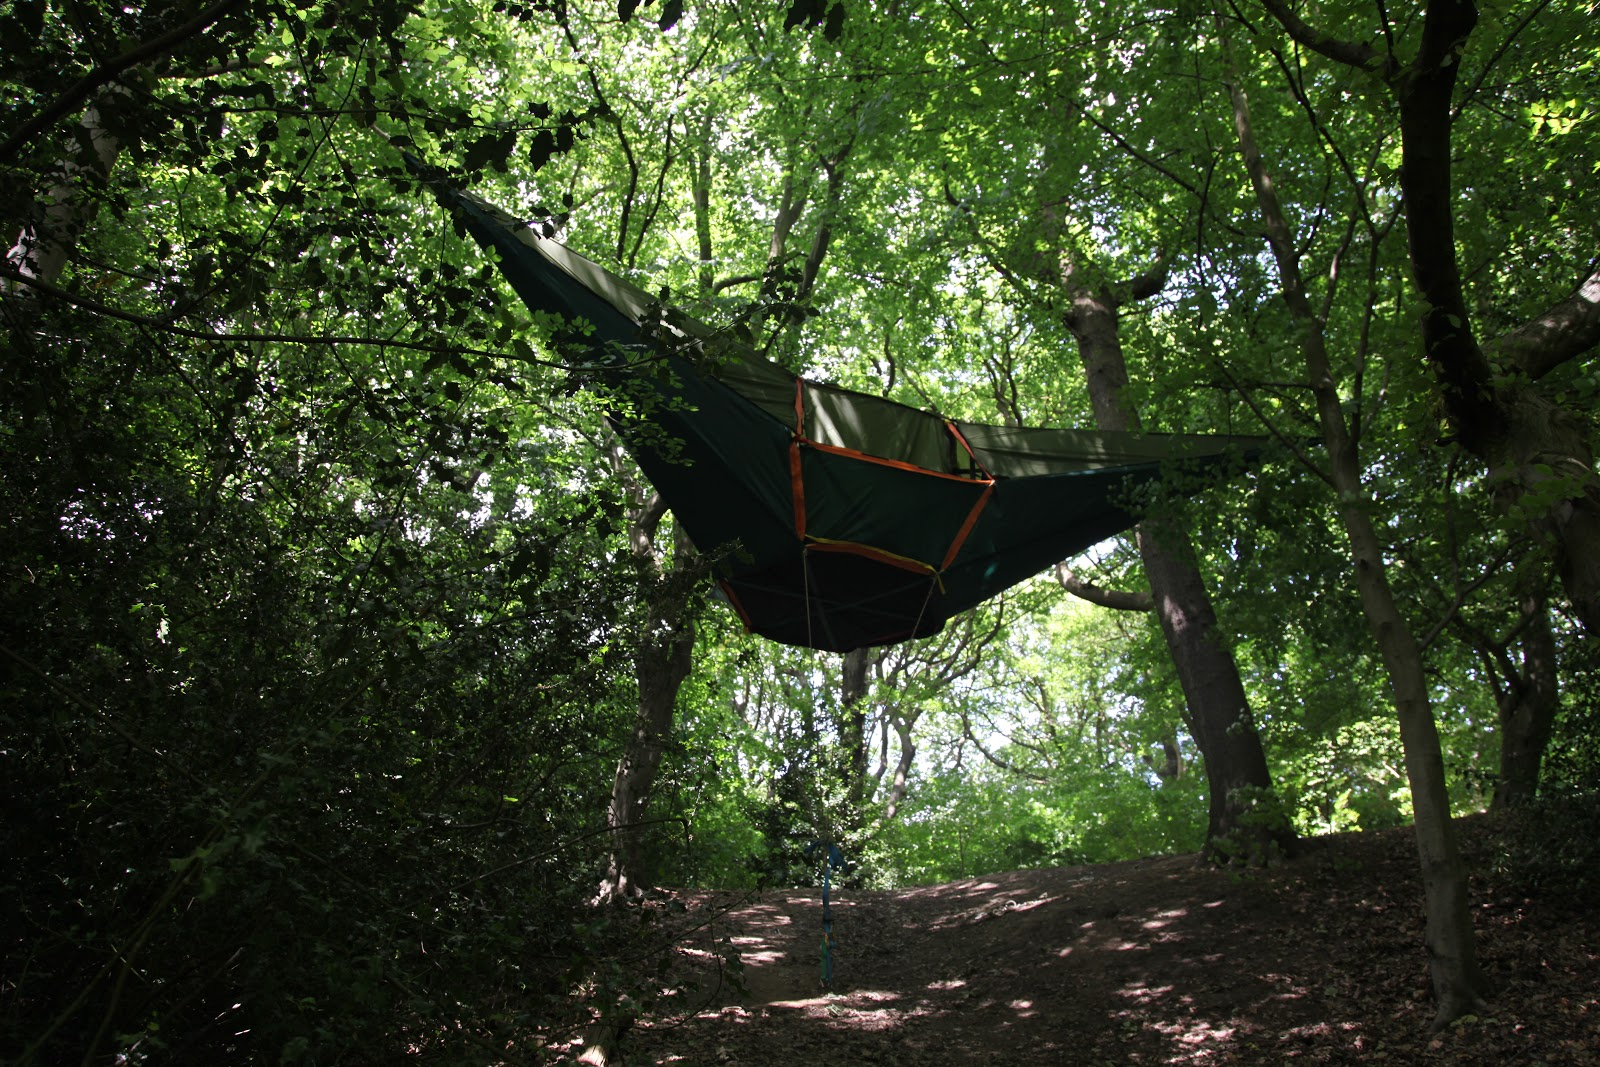 how-i-m-fulfilling-my-childhood-dreams-with-a-portable-treehouse-business